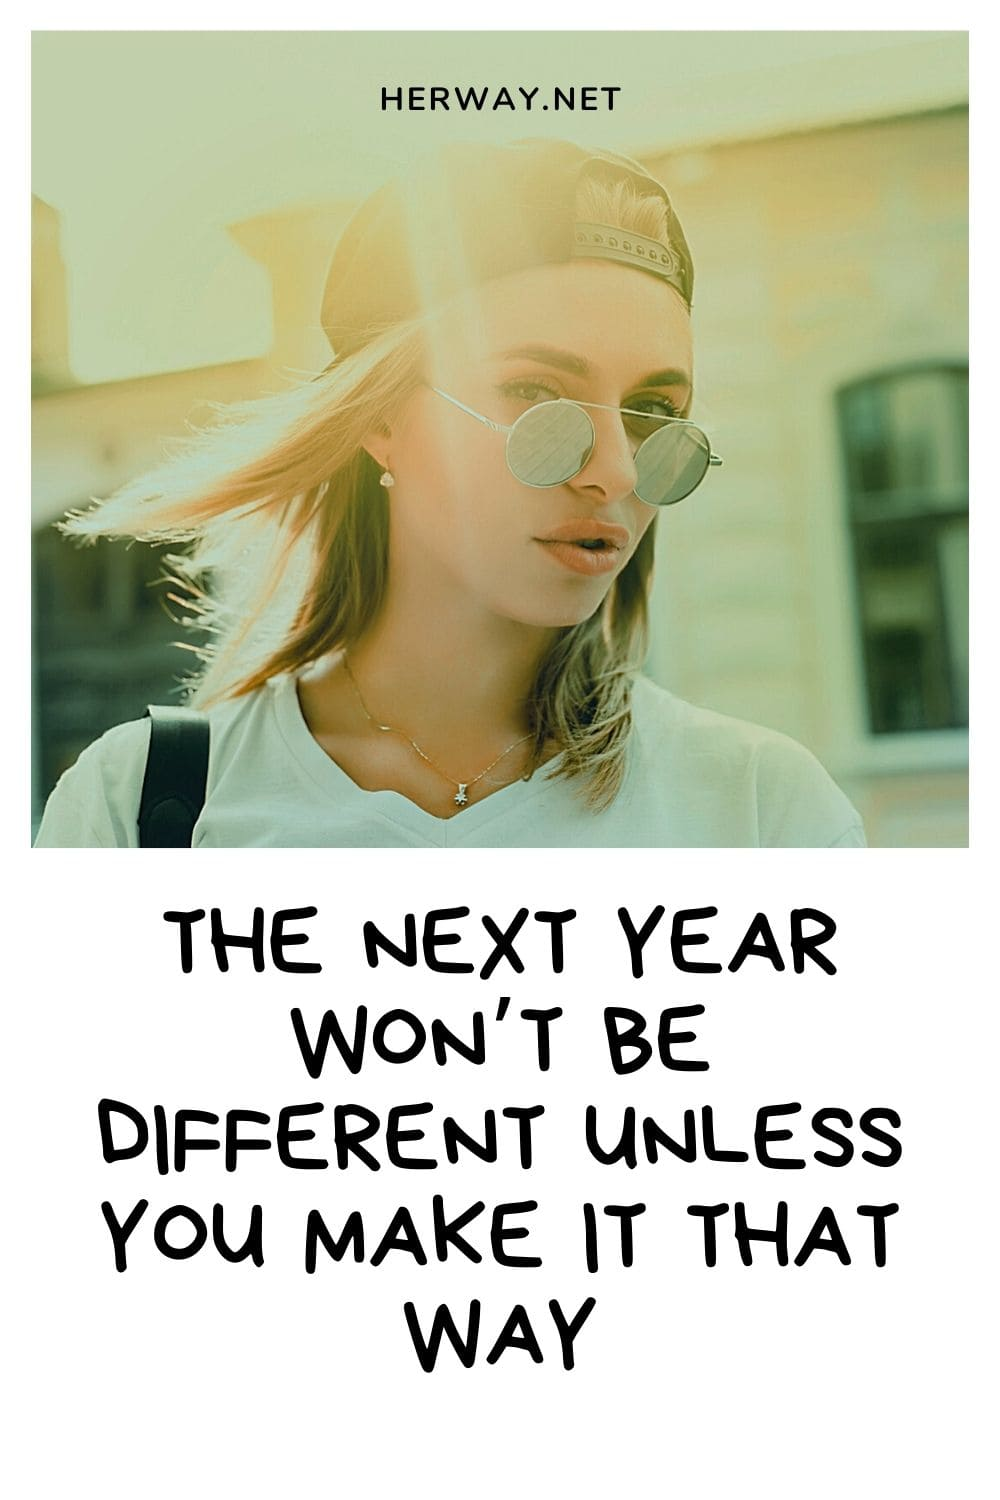 The Next Year Won't Be Different Unless You Make It That Way